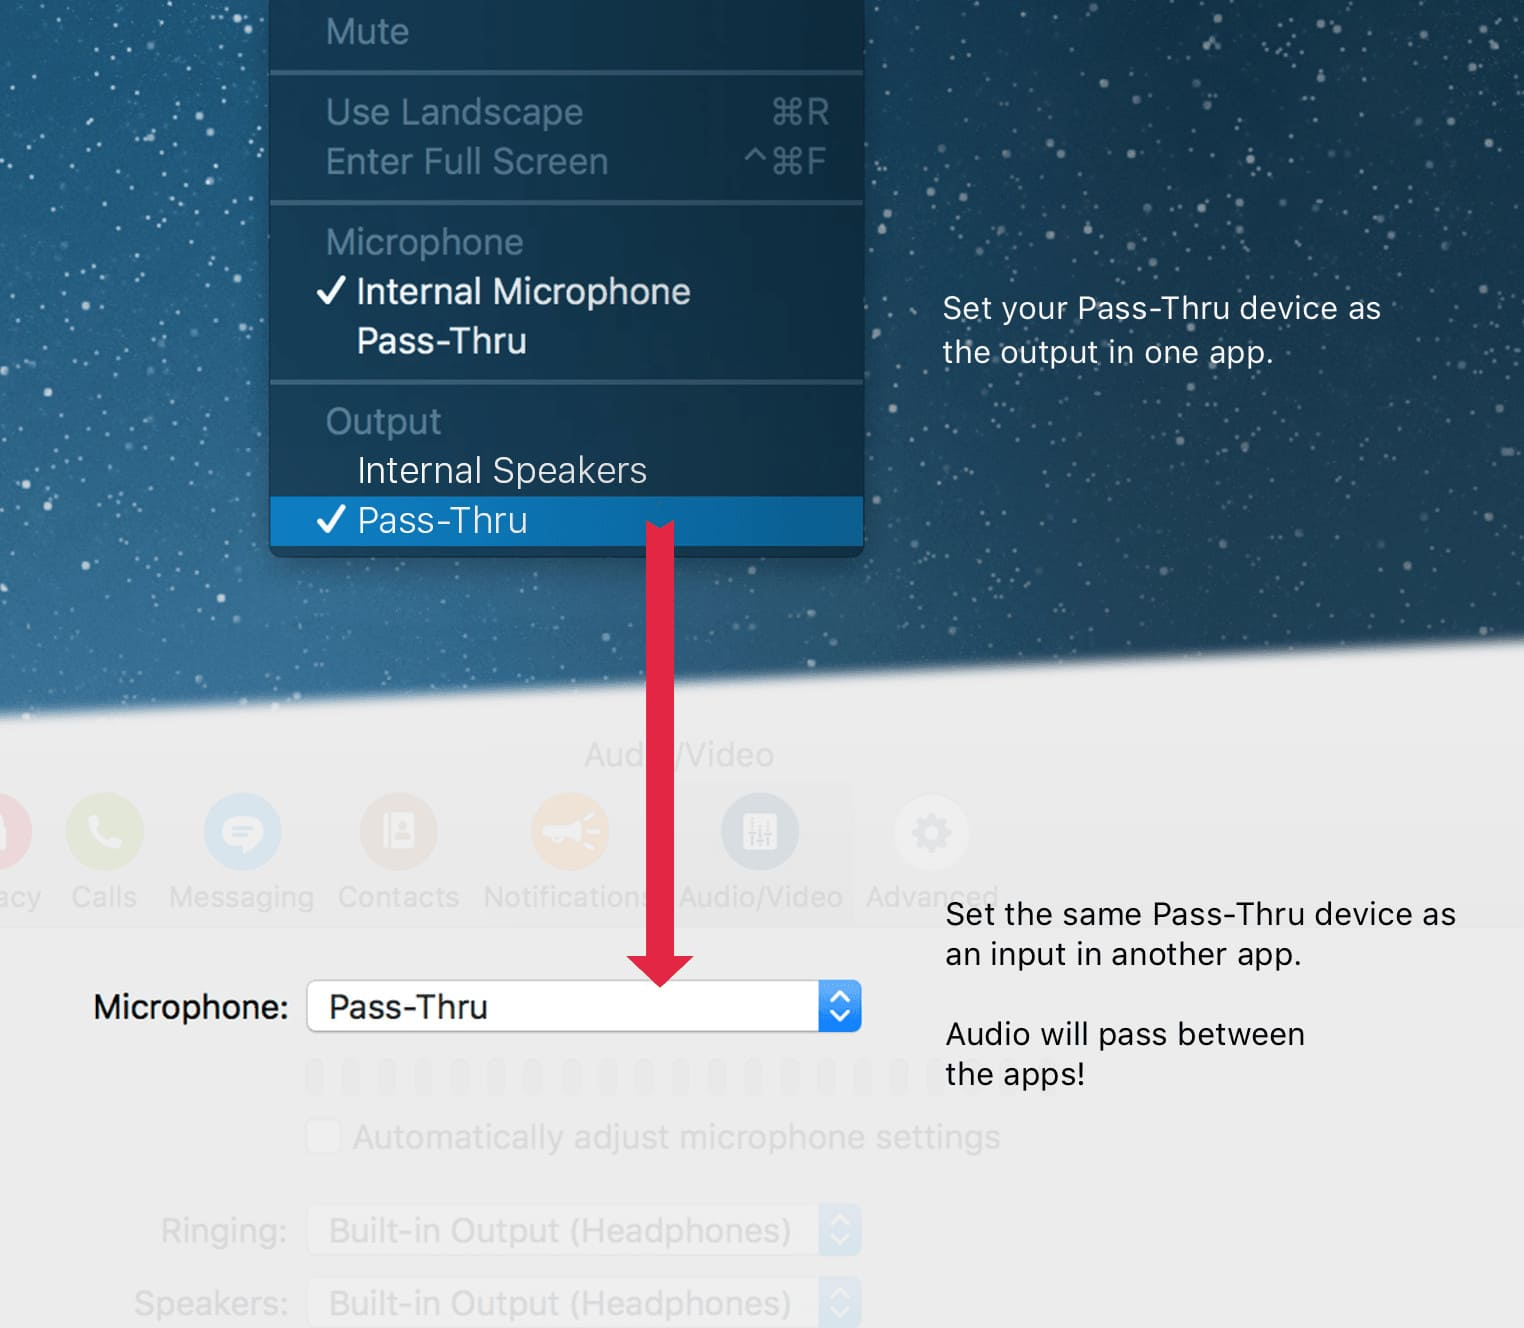 Loopback routes audio wherever you want it, including your separate MacBook audio outputs.